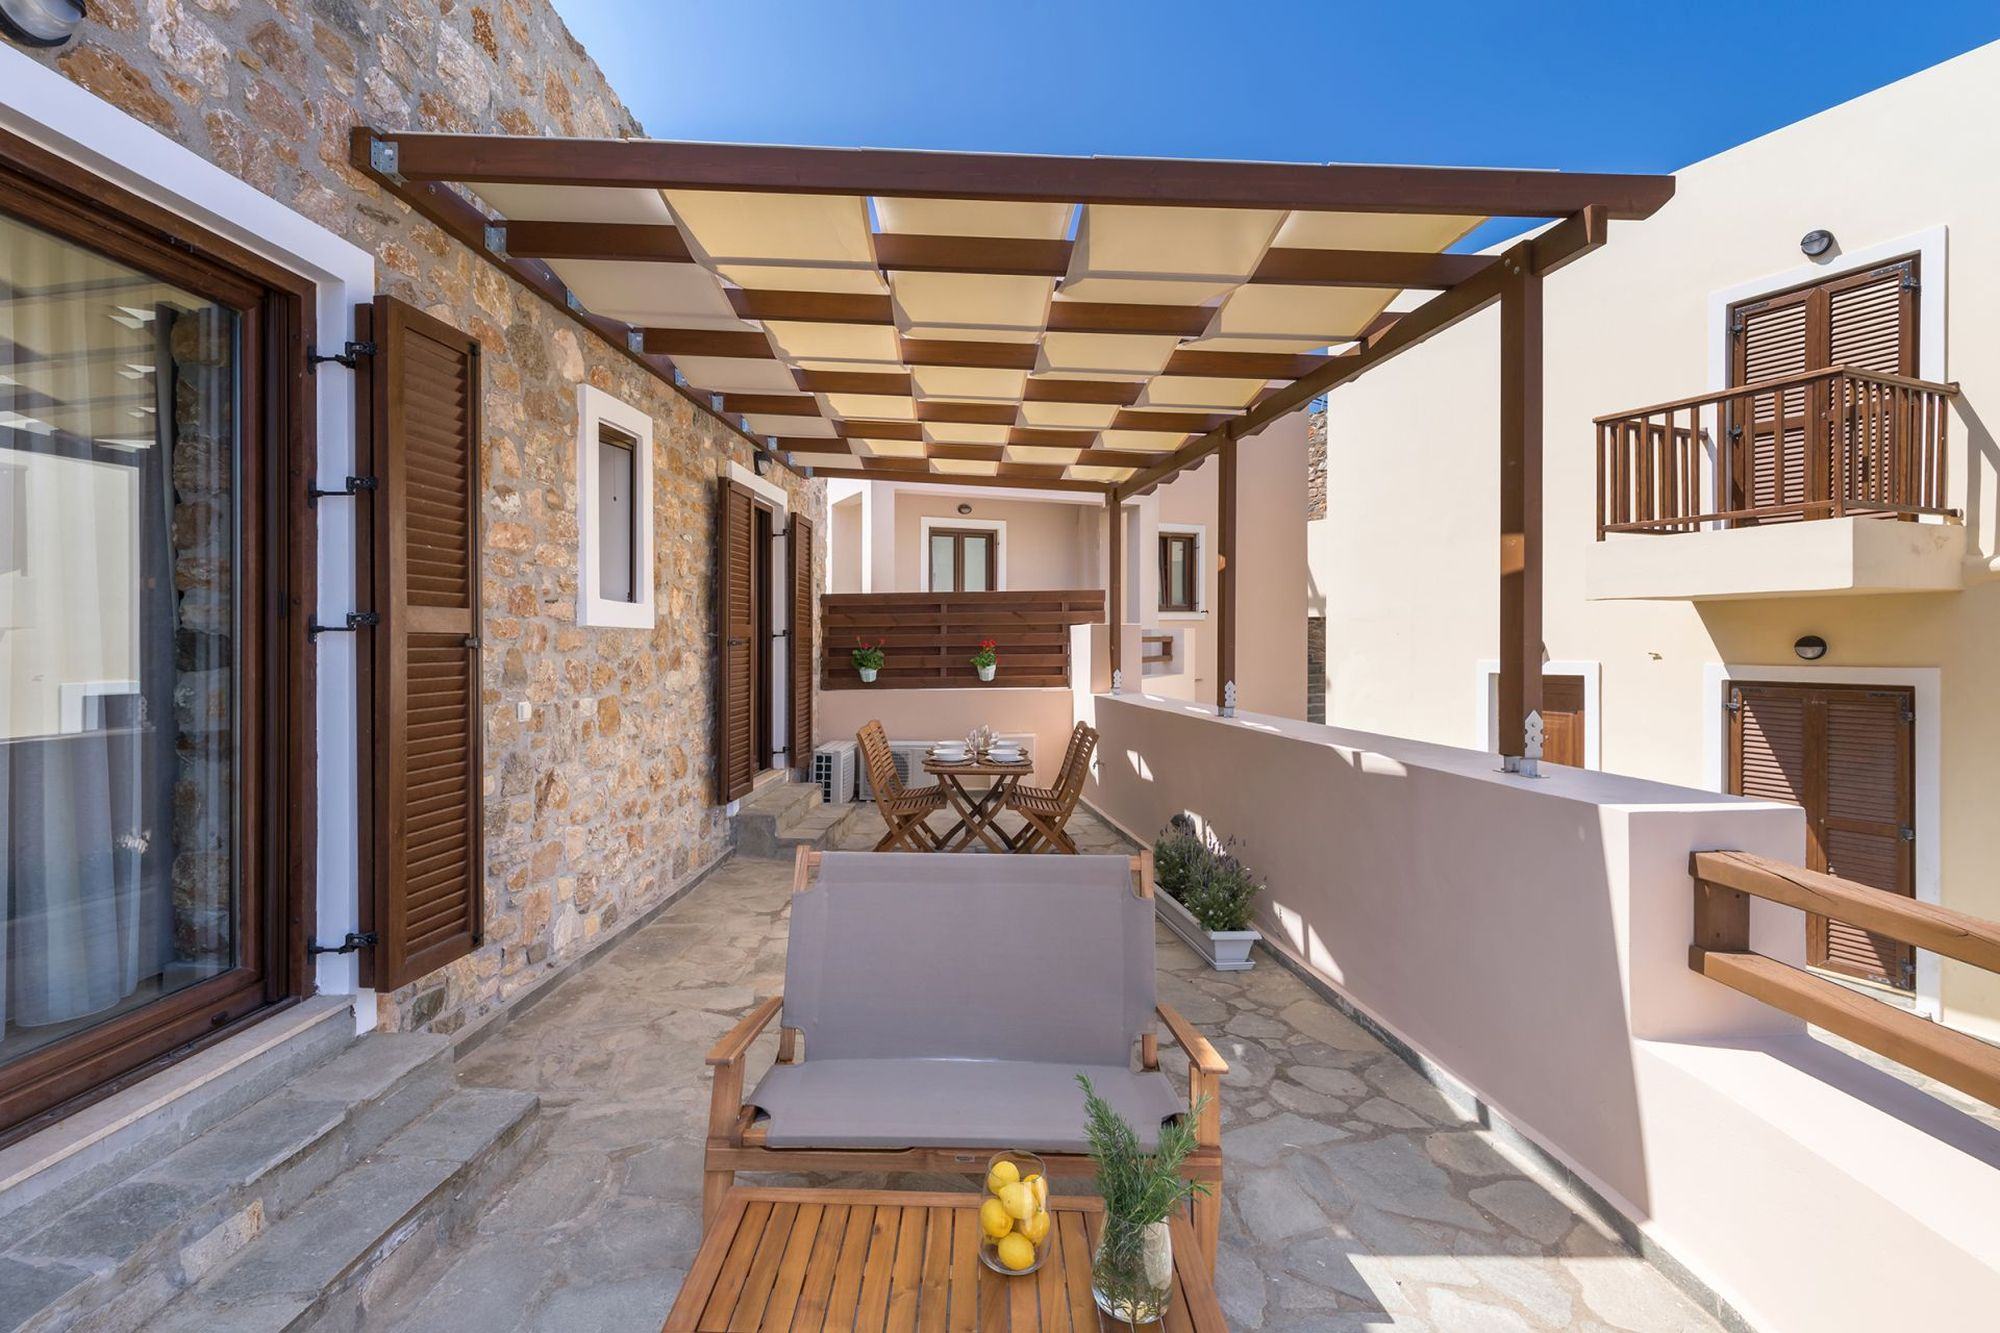 Veranda of a stone-built residence with pergola, furnished with a dining table and a lounge.